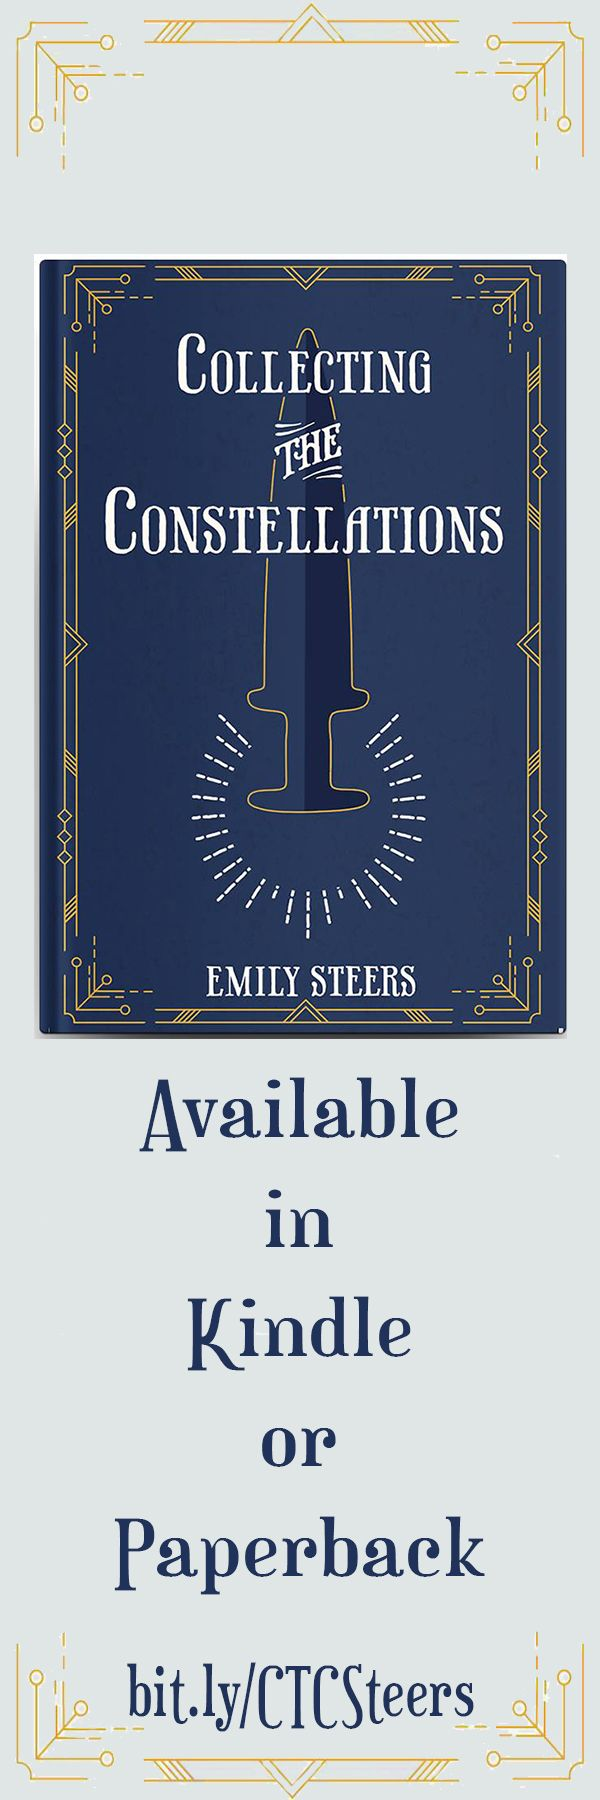 The first chapter of Collecting the Constellations by Emily Steers. Collecting the Constellations preview. Adventure novel with strong female character.